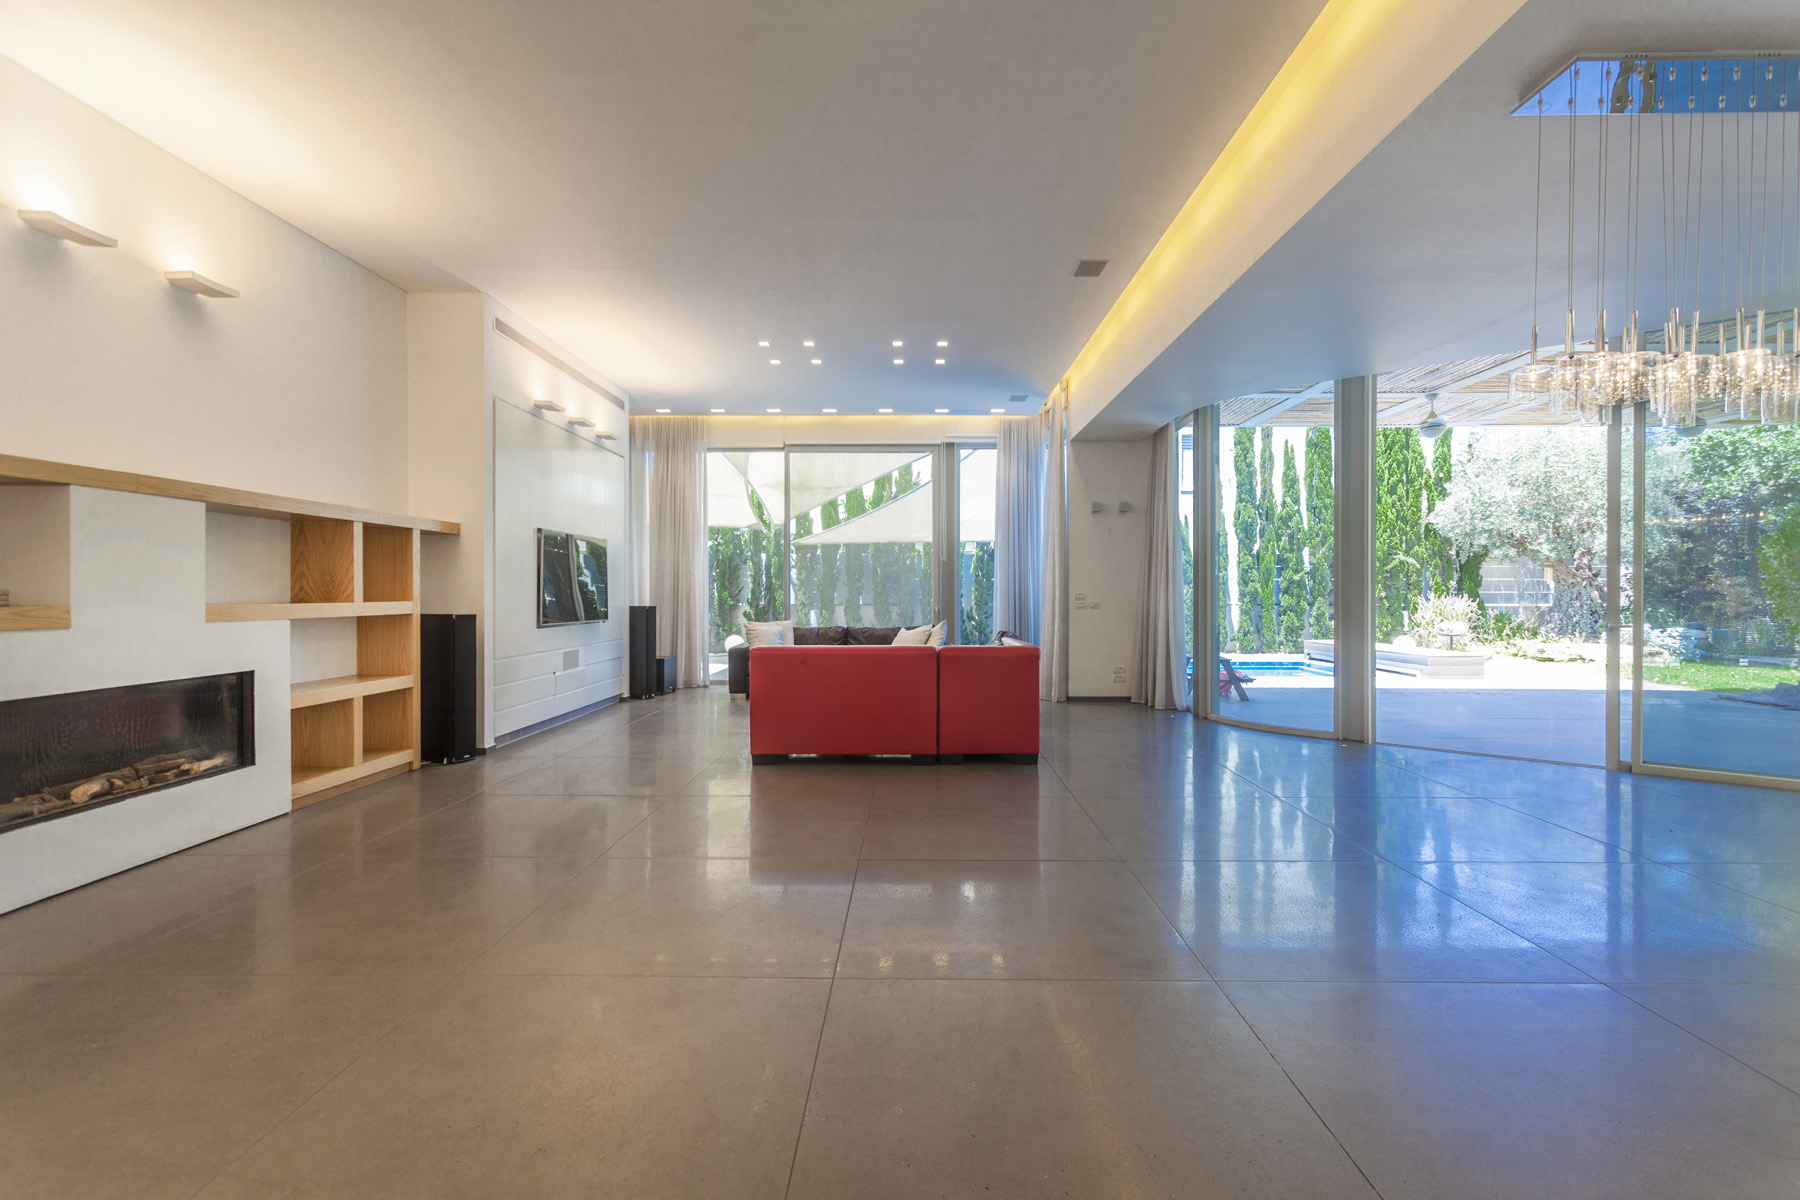 Single Family Home for Sale at Stately Luxury Villa in Even Yehuda Netanya, Israel Israel